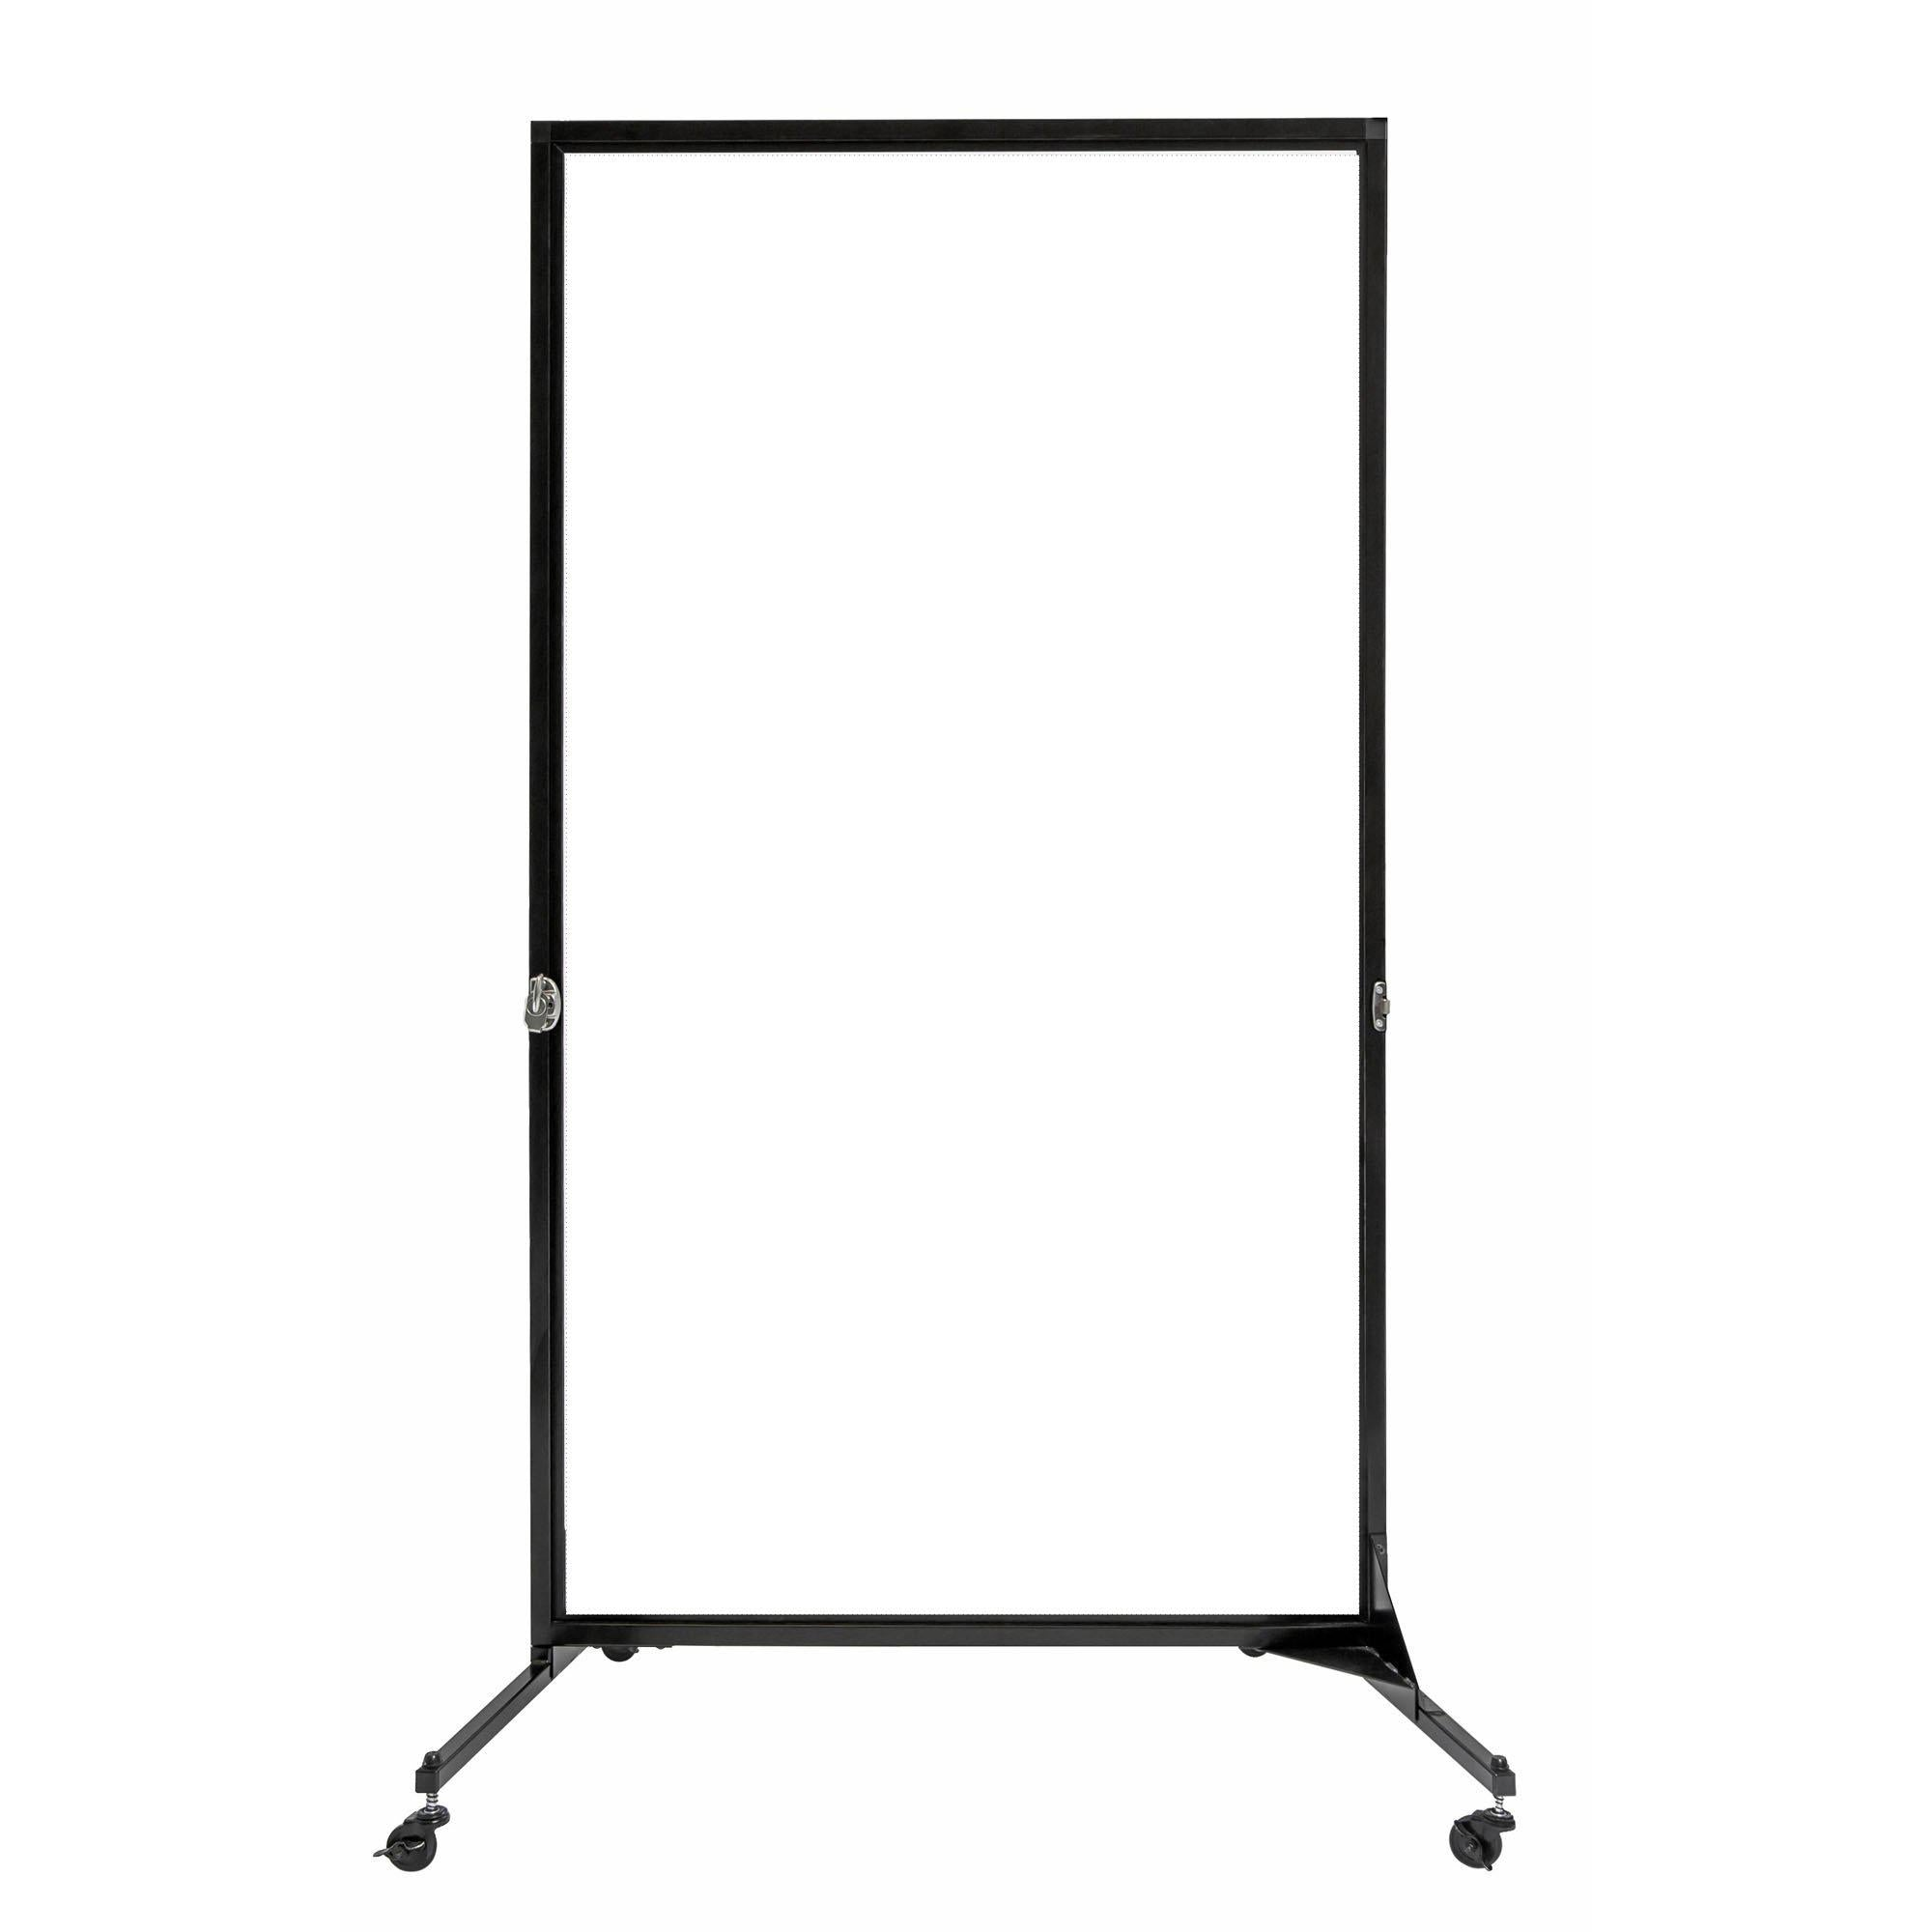 "Screenflex White Board Room Divider, 6' 2"" High-Partitions & Display Panels-1 Panel (3' 4"" L)-"